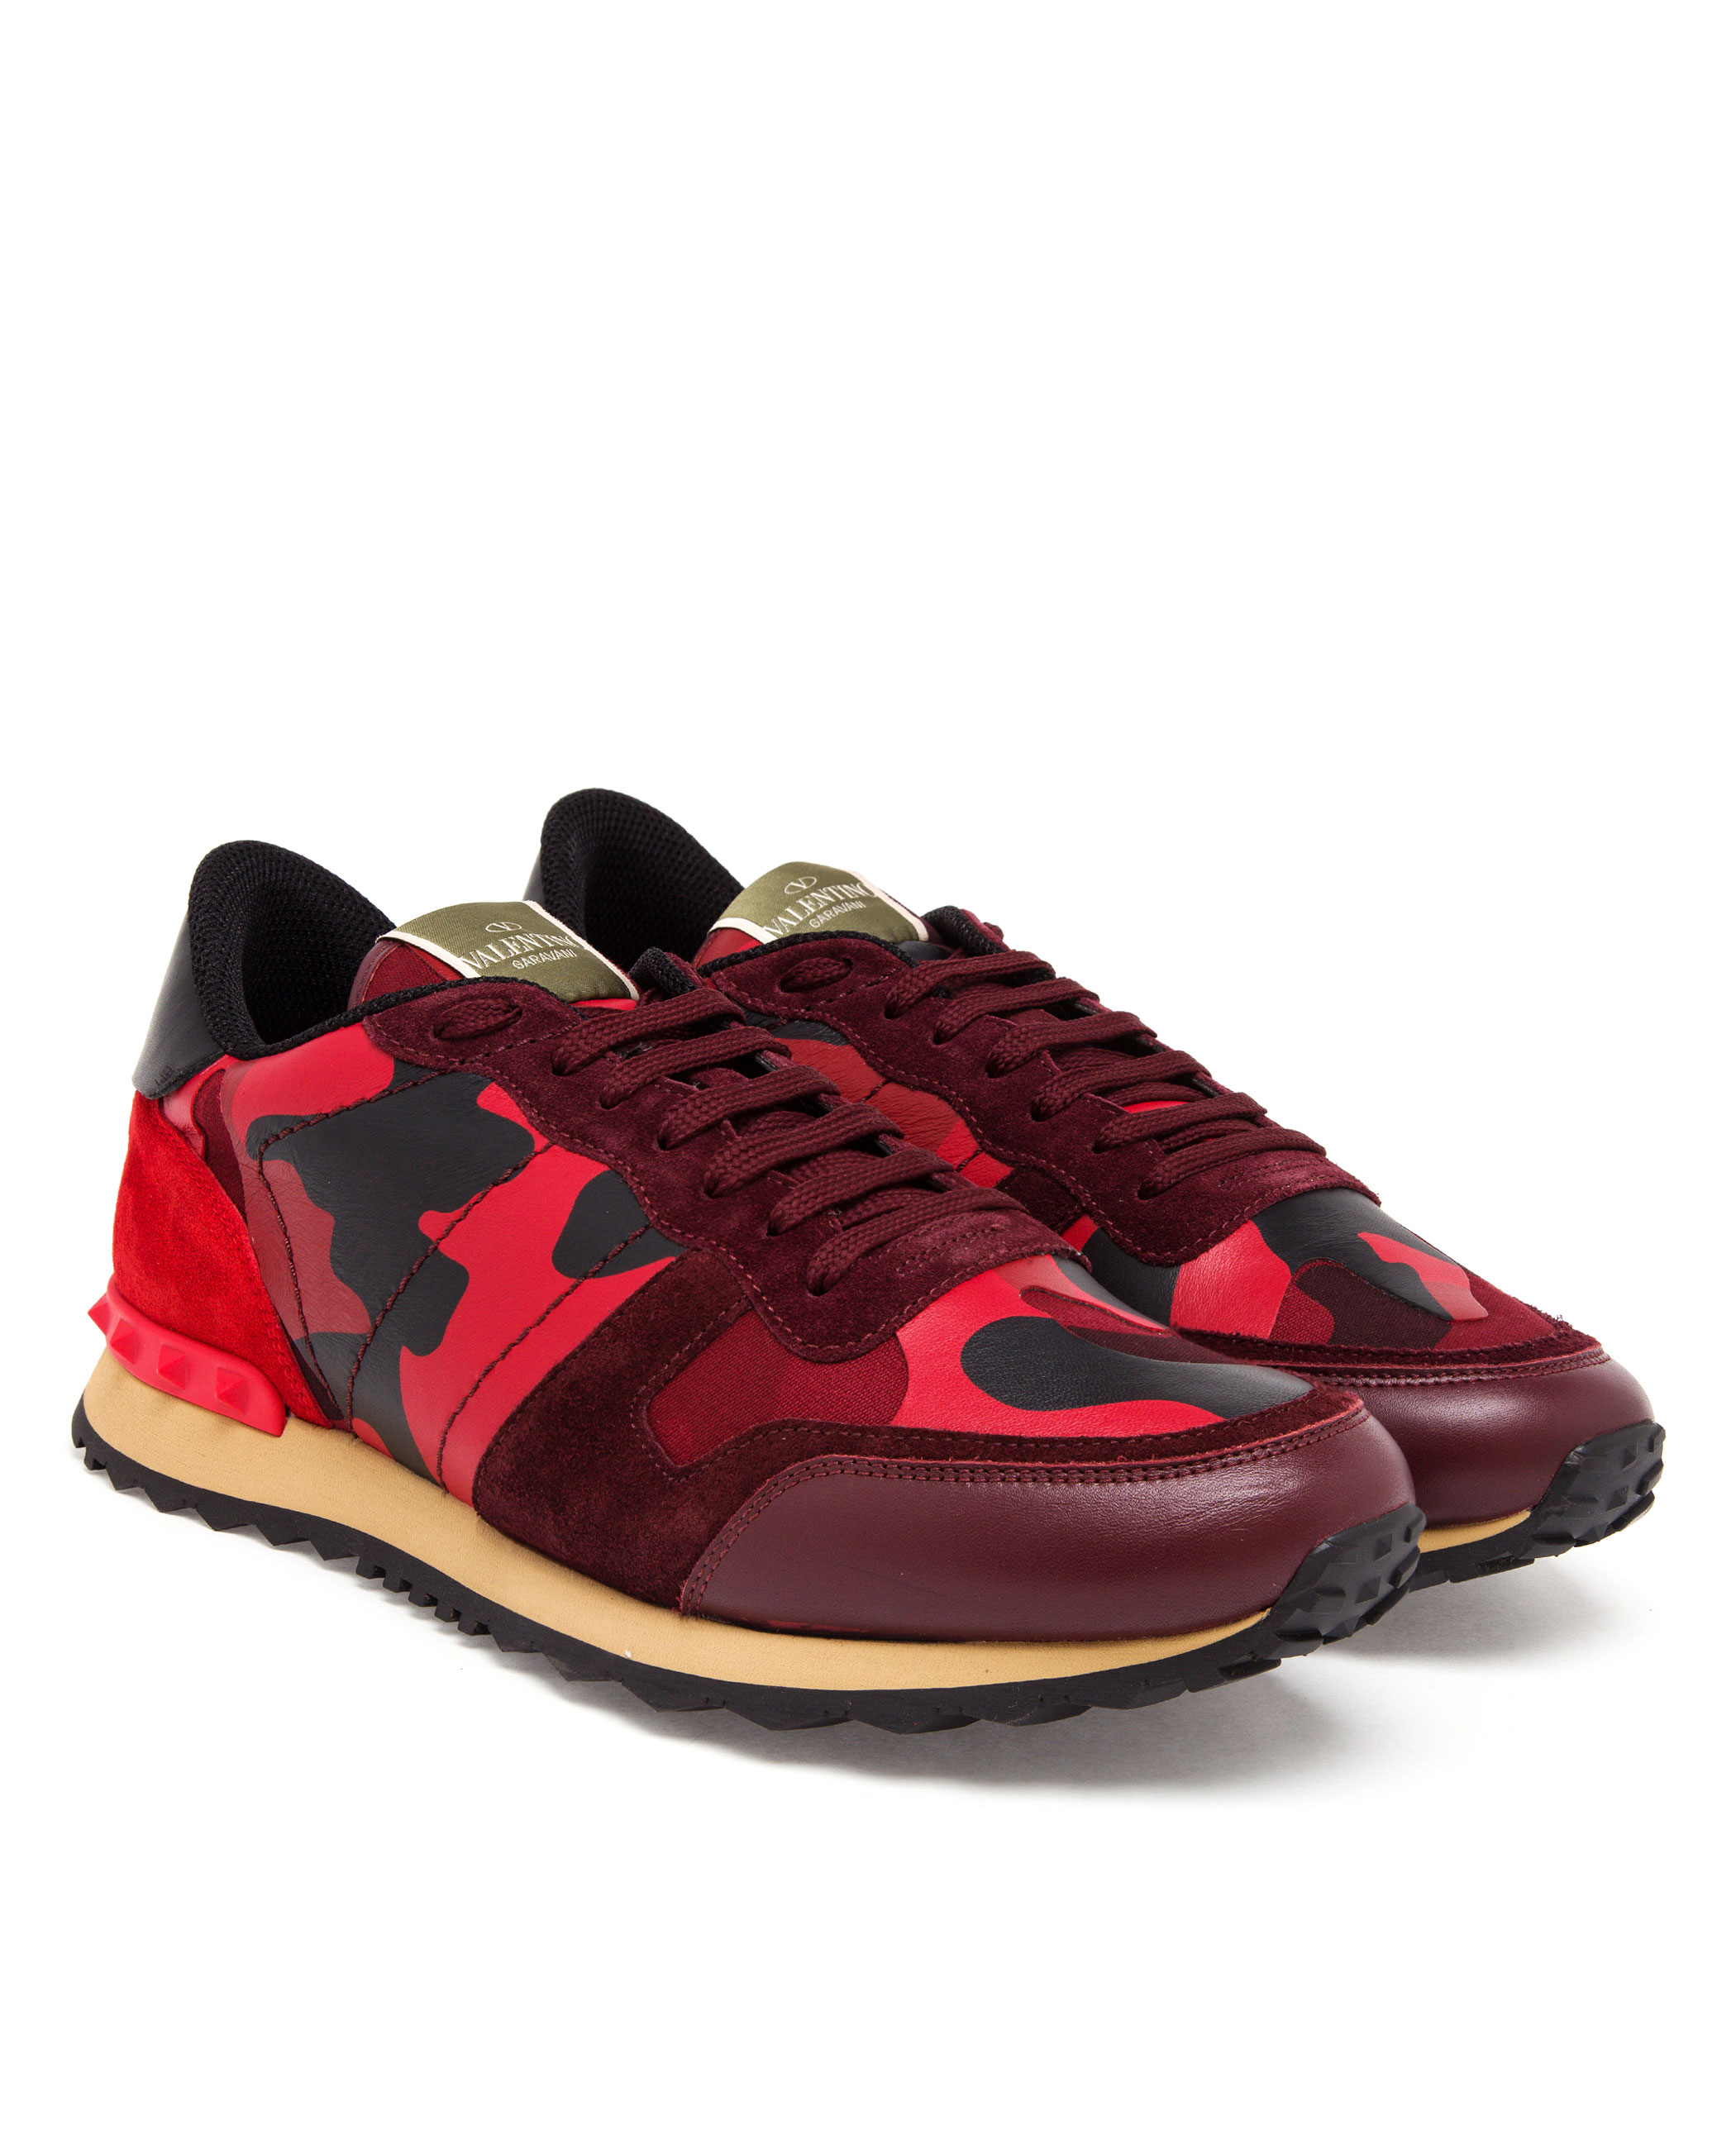 valentino camouflage sneakers in red for men lyst. Black Bedroom Furniture Sets. Home Design Ideas